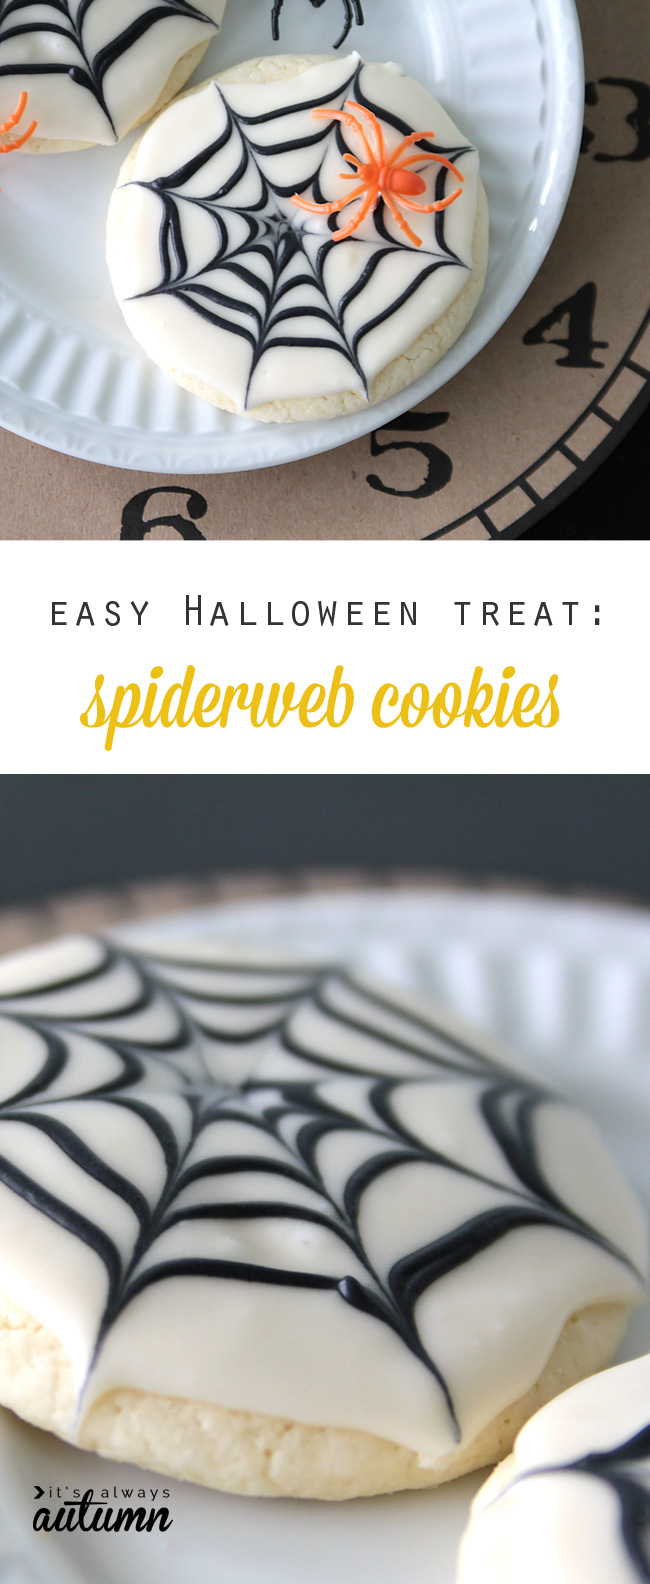 These Halloween spiderweb cookies look fancy, but are actually super easy to make! Click through for the simple decorating trick. Fun kids' food craft.